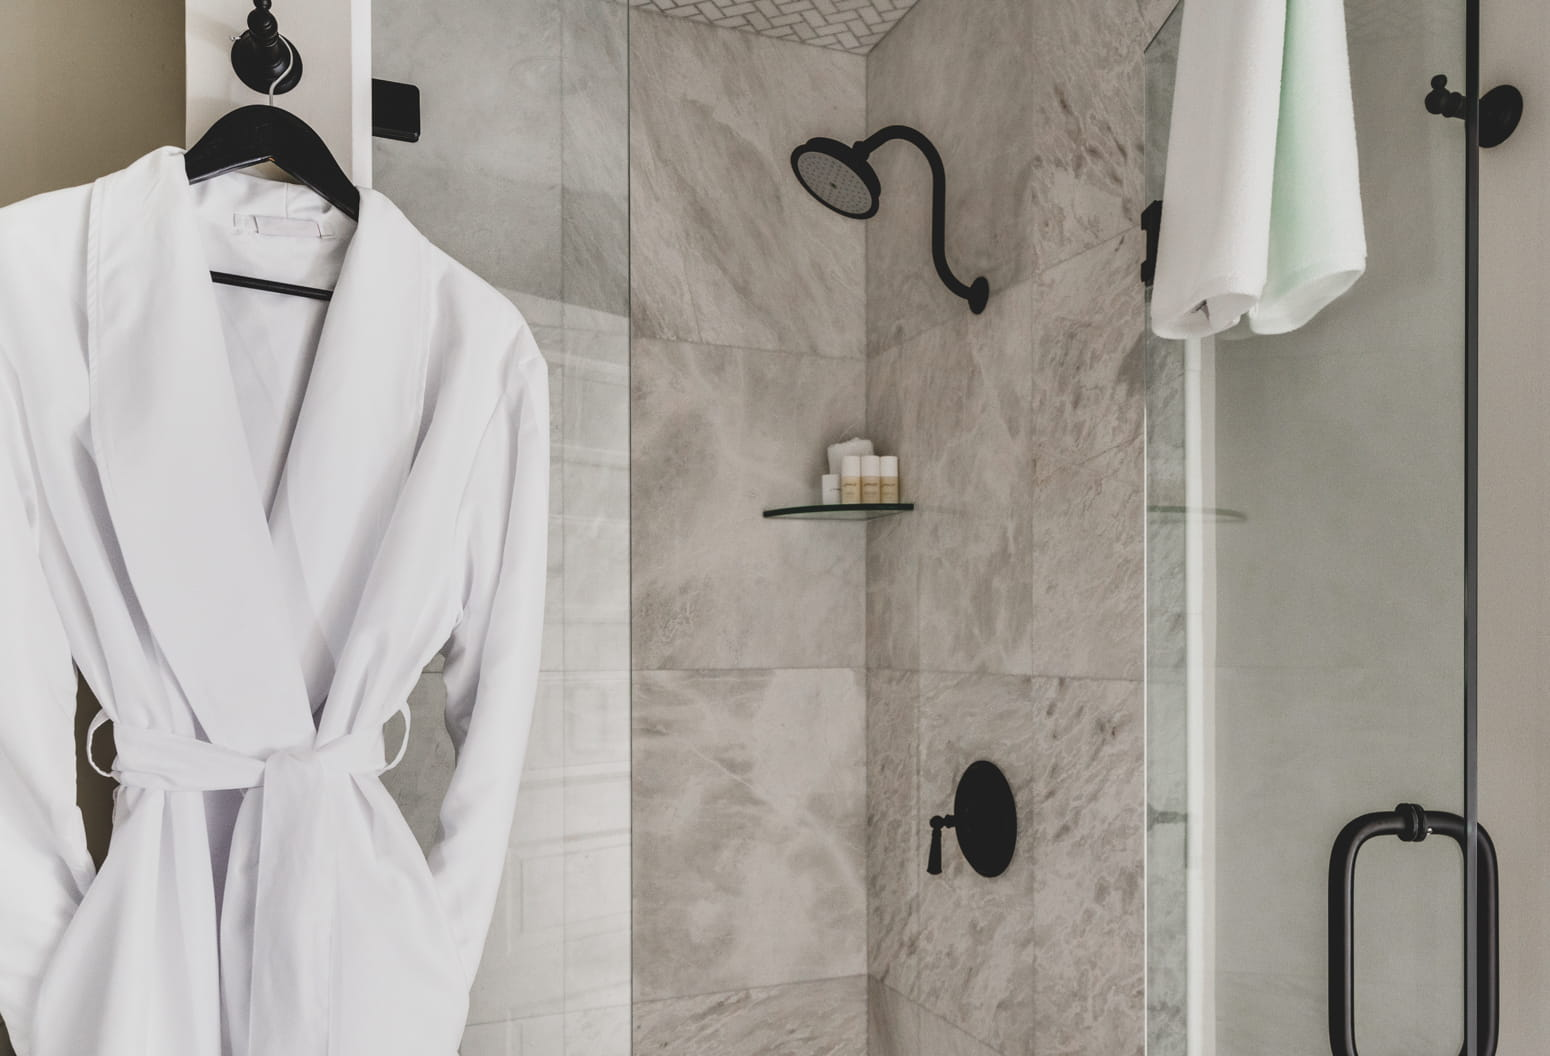 Sparrow Room Shower with a robe hanging on the hook